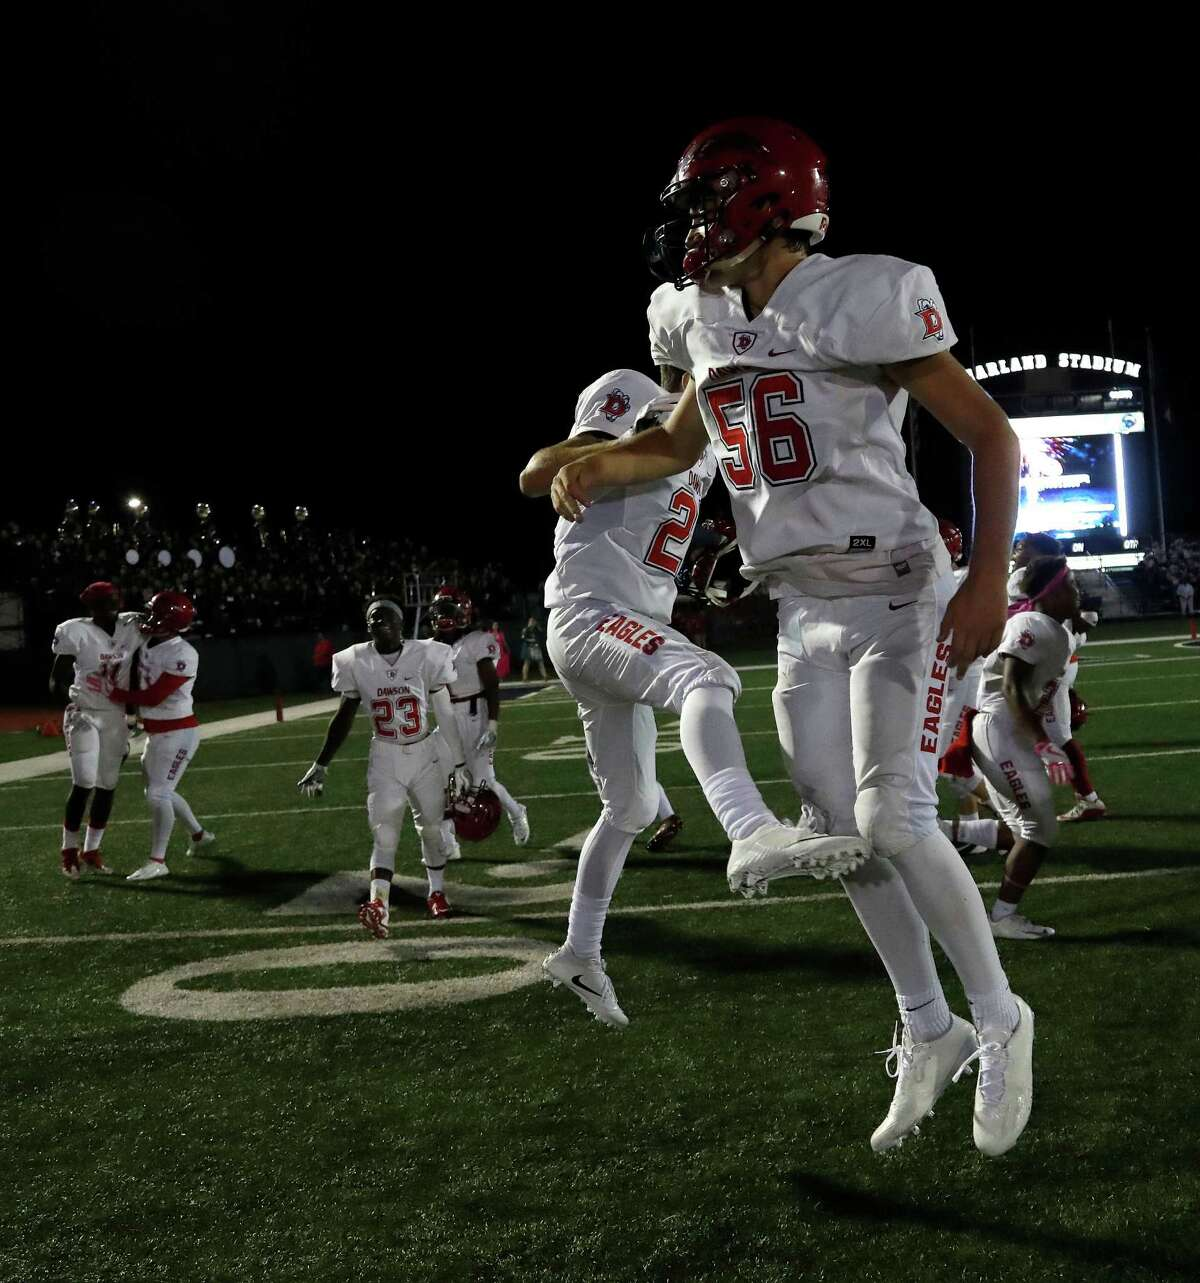 Dawson's Christopher Ruffino (29) and Michael Largent (56) celebrate their 34-32 win over Pearland after a District 23-6A high school game between Pearland and Dawson, Friday,Oct. 14, 2016 in Pearland.